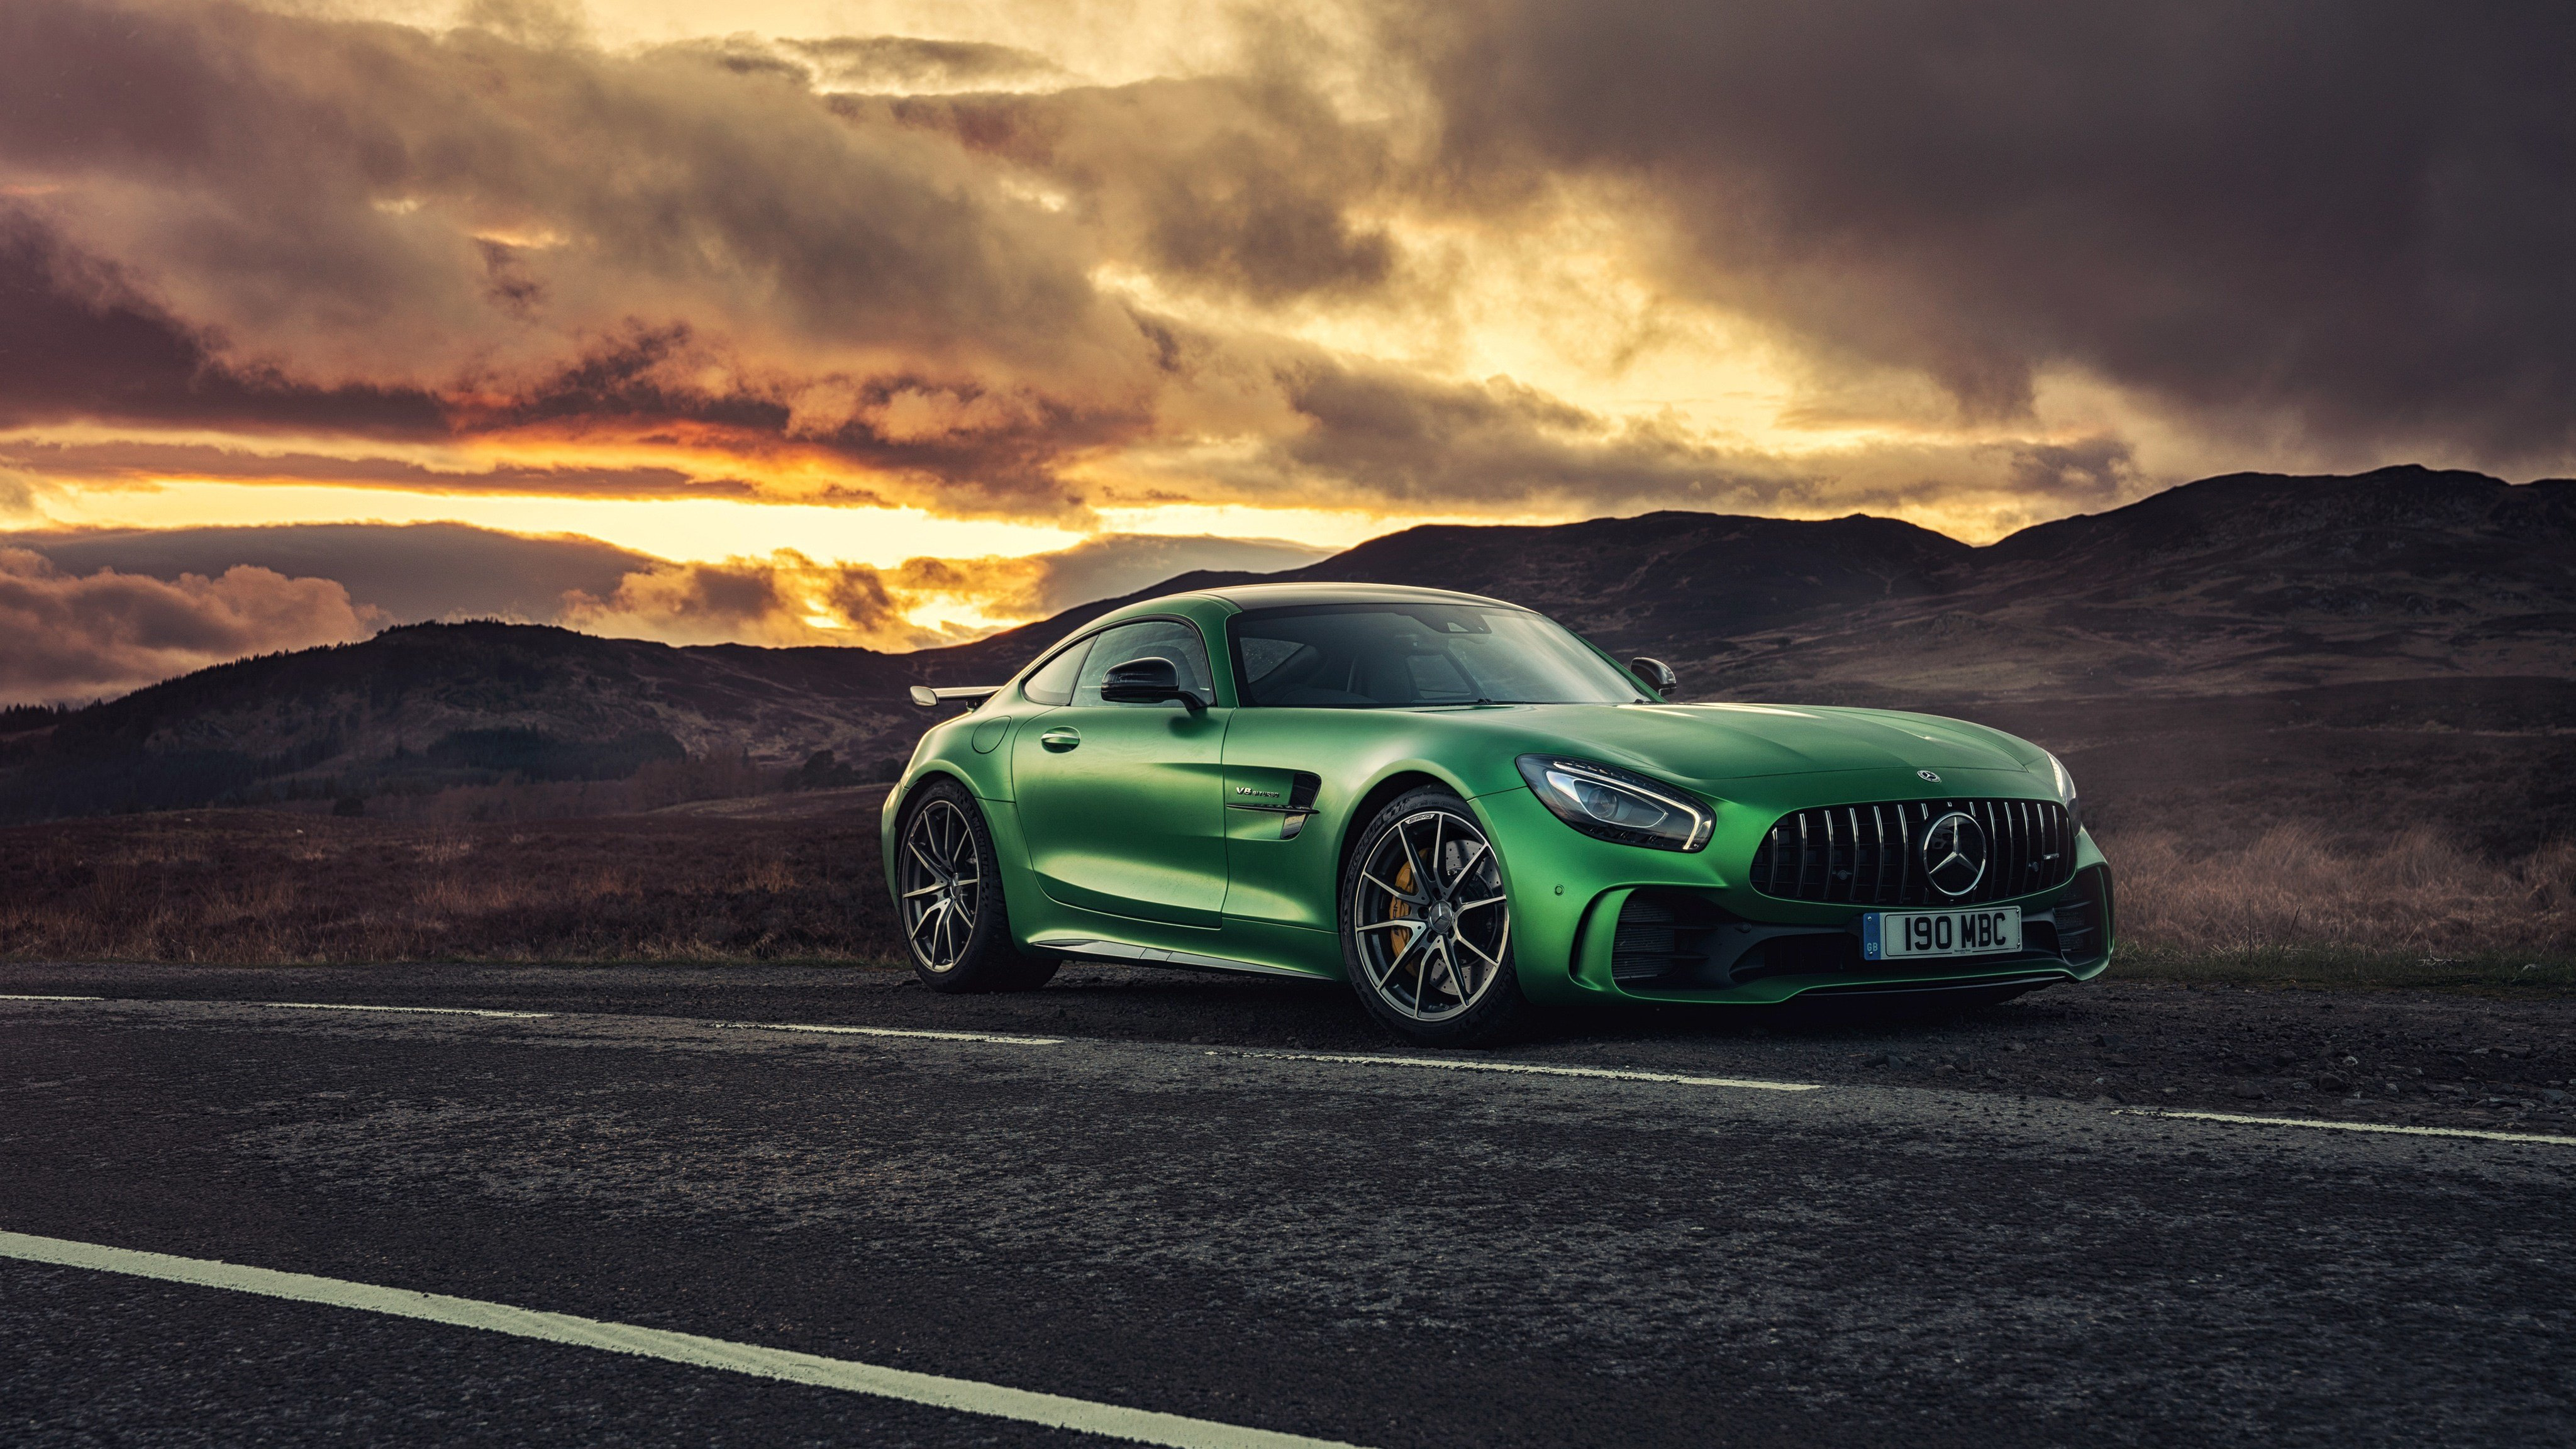 Latest Mercedes Amg Gt R 2017 4K Wallpaper Hd Car Wallpapers Free Download